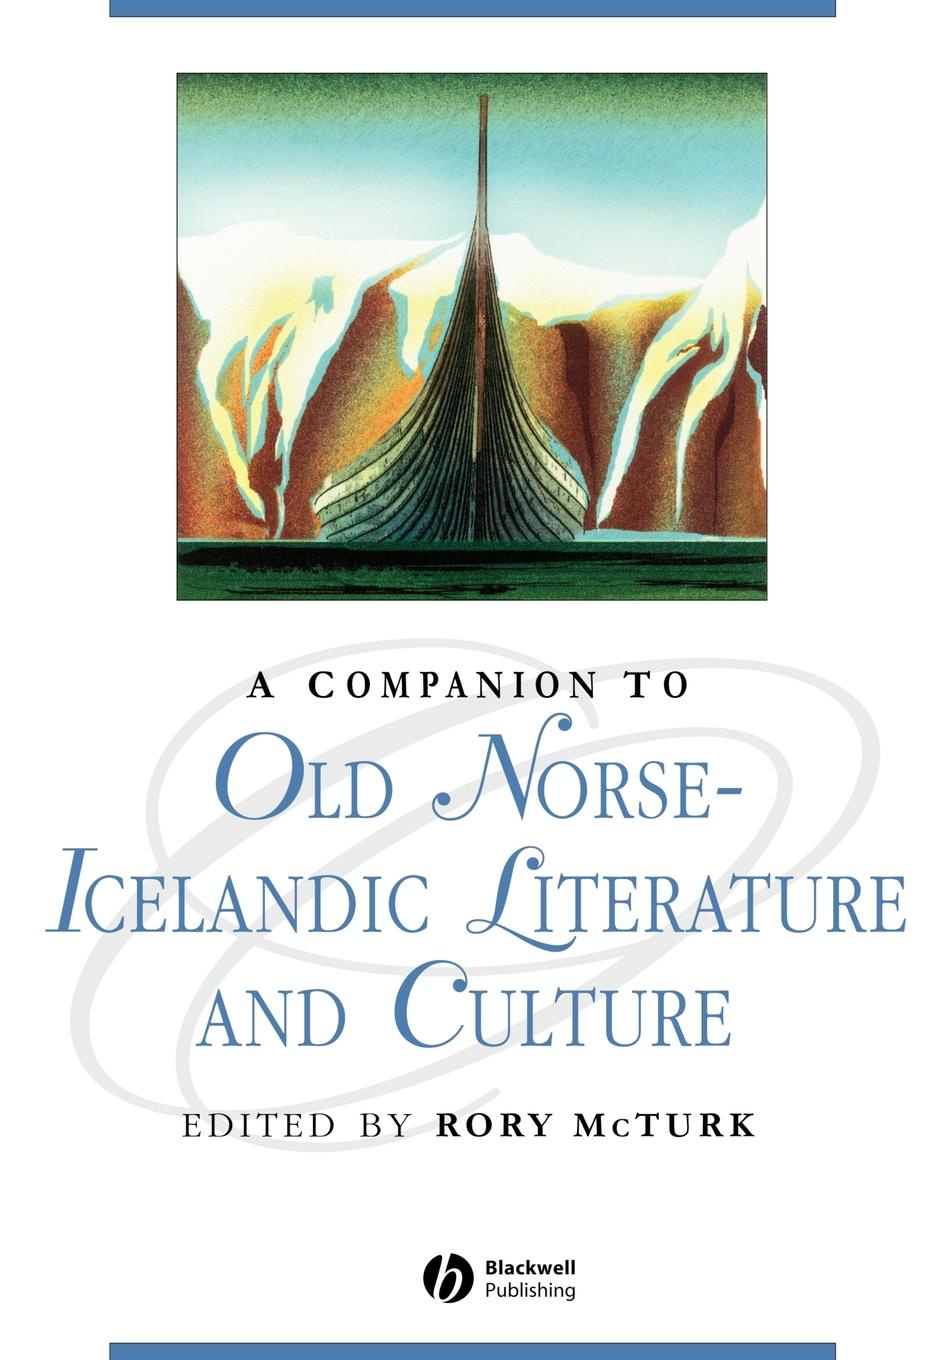 MCTURK COMP TO OLD NORSE LIT